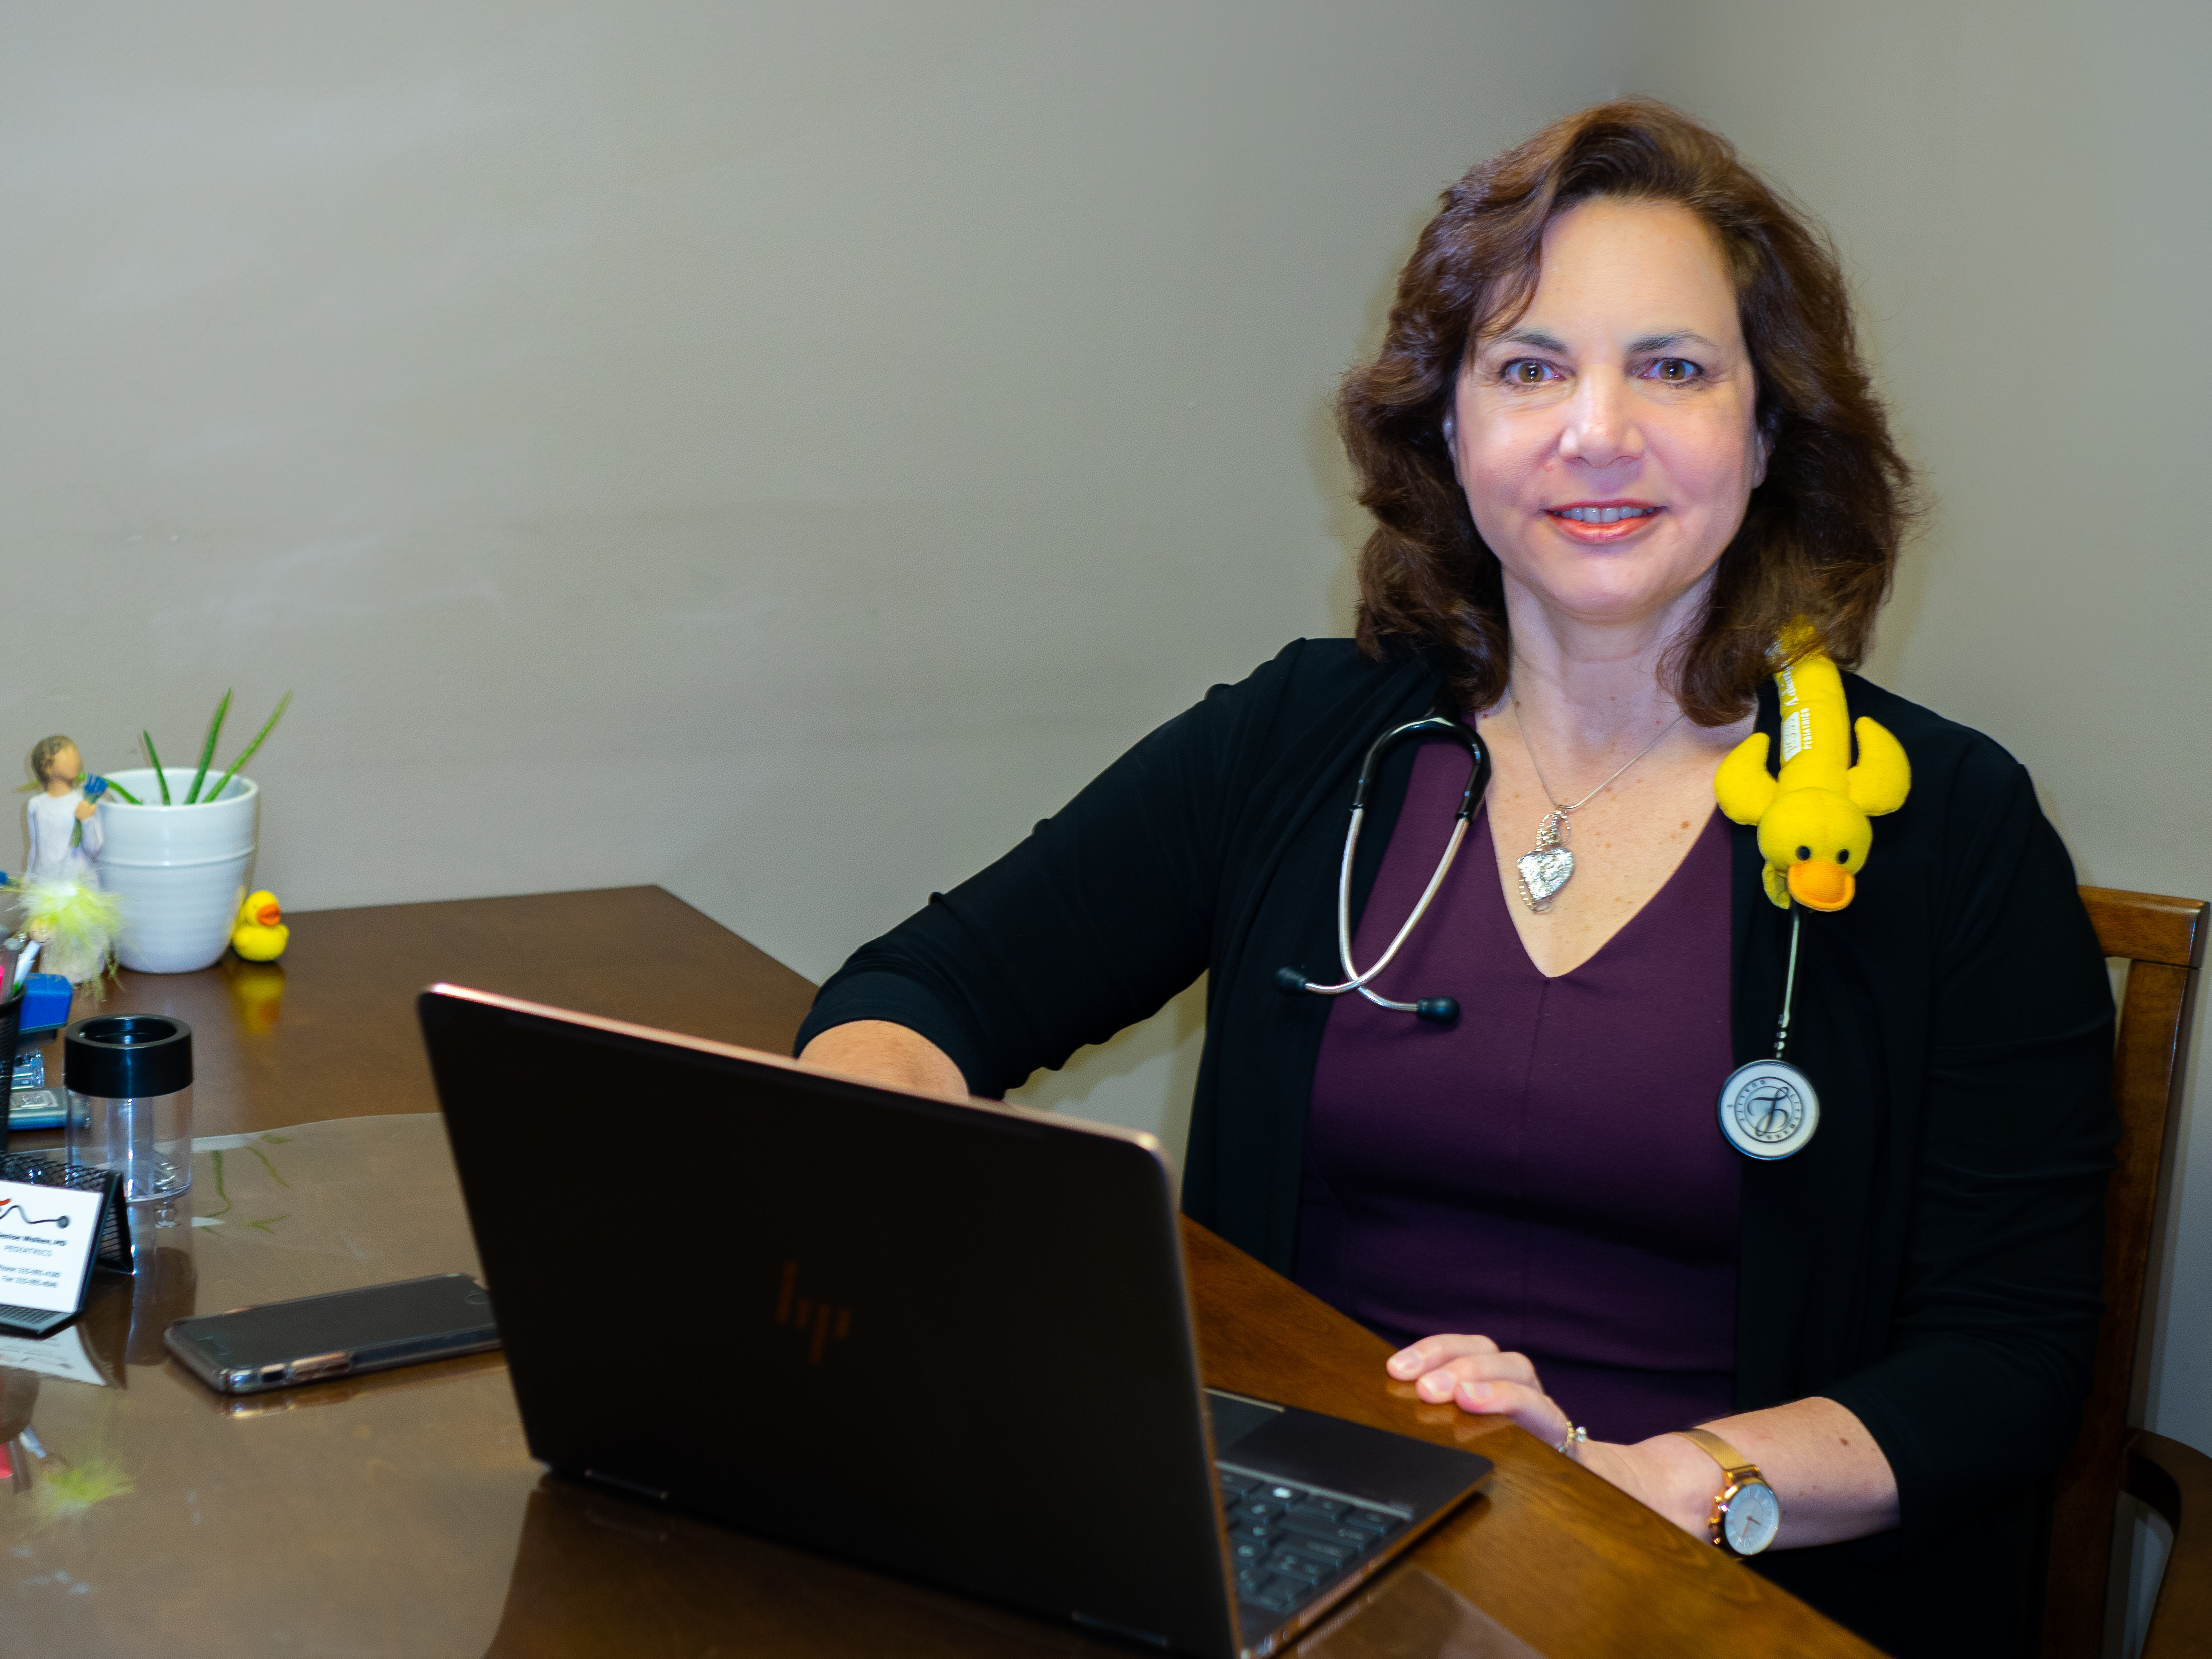 Dr Wolken with her laptop